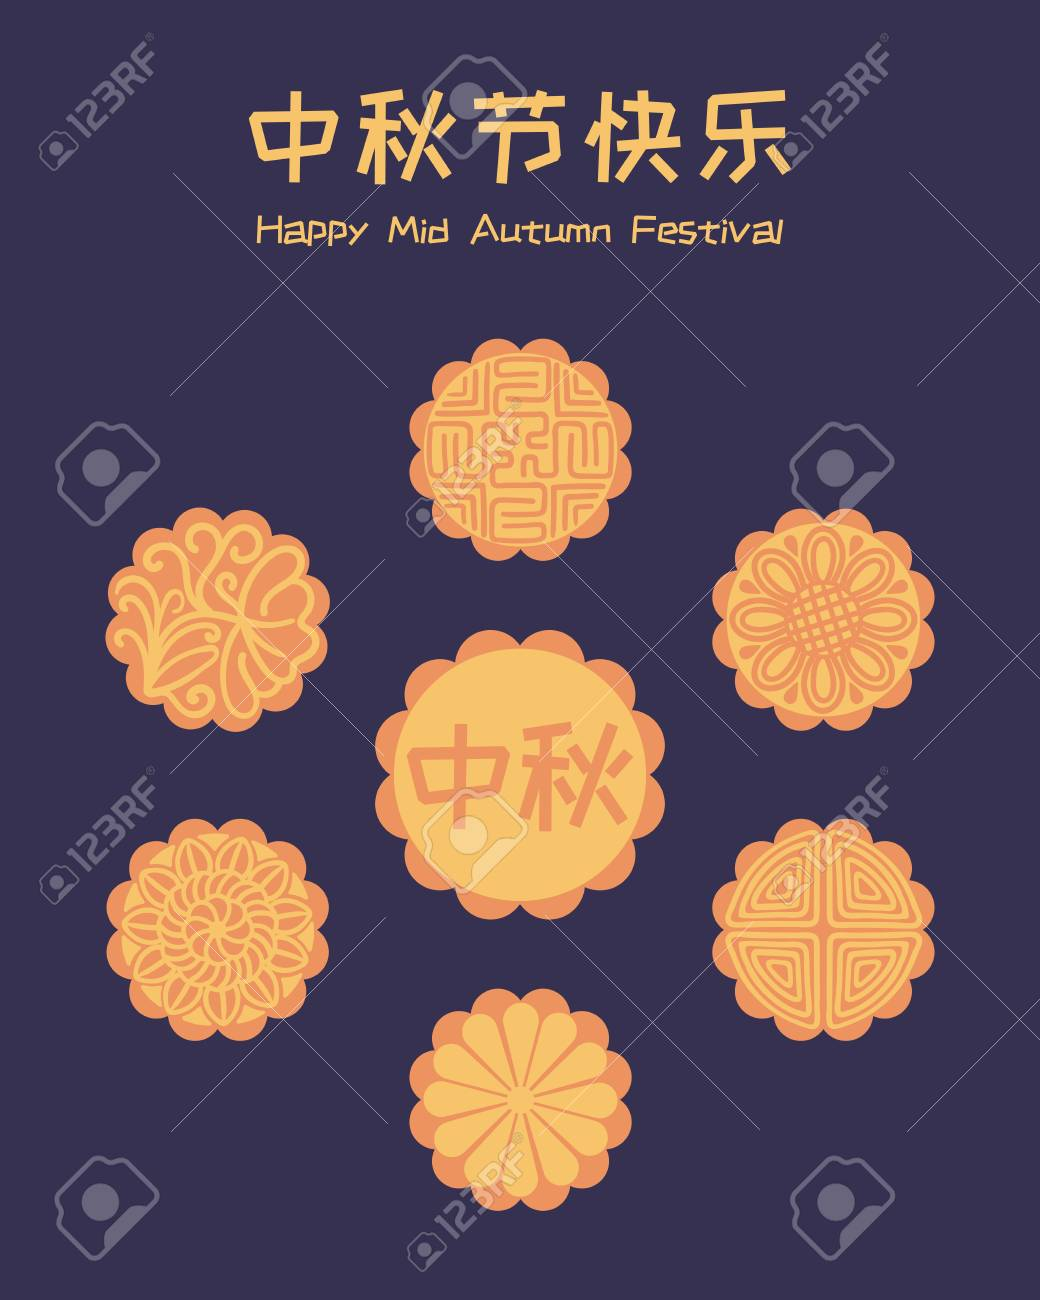 Mid autumn festival greeting card poster banner design with mid autumn festival greeting card poster banner design with moon cakes typography m4hsunfo